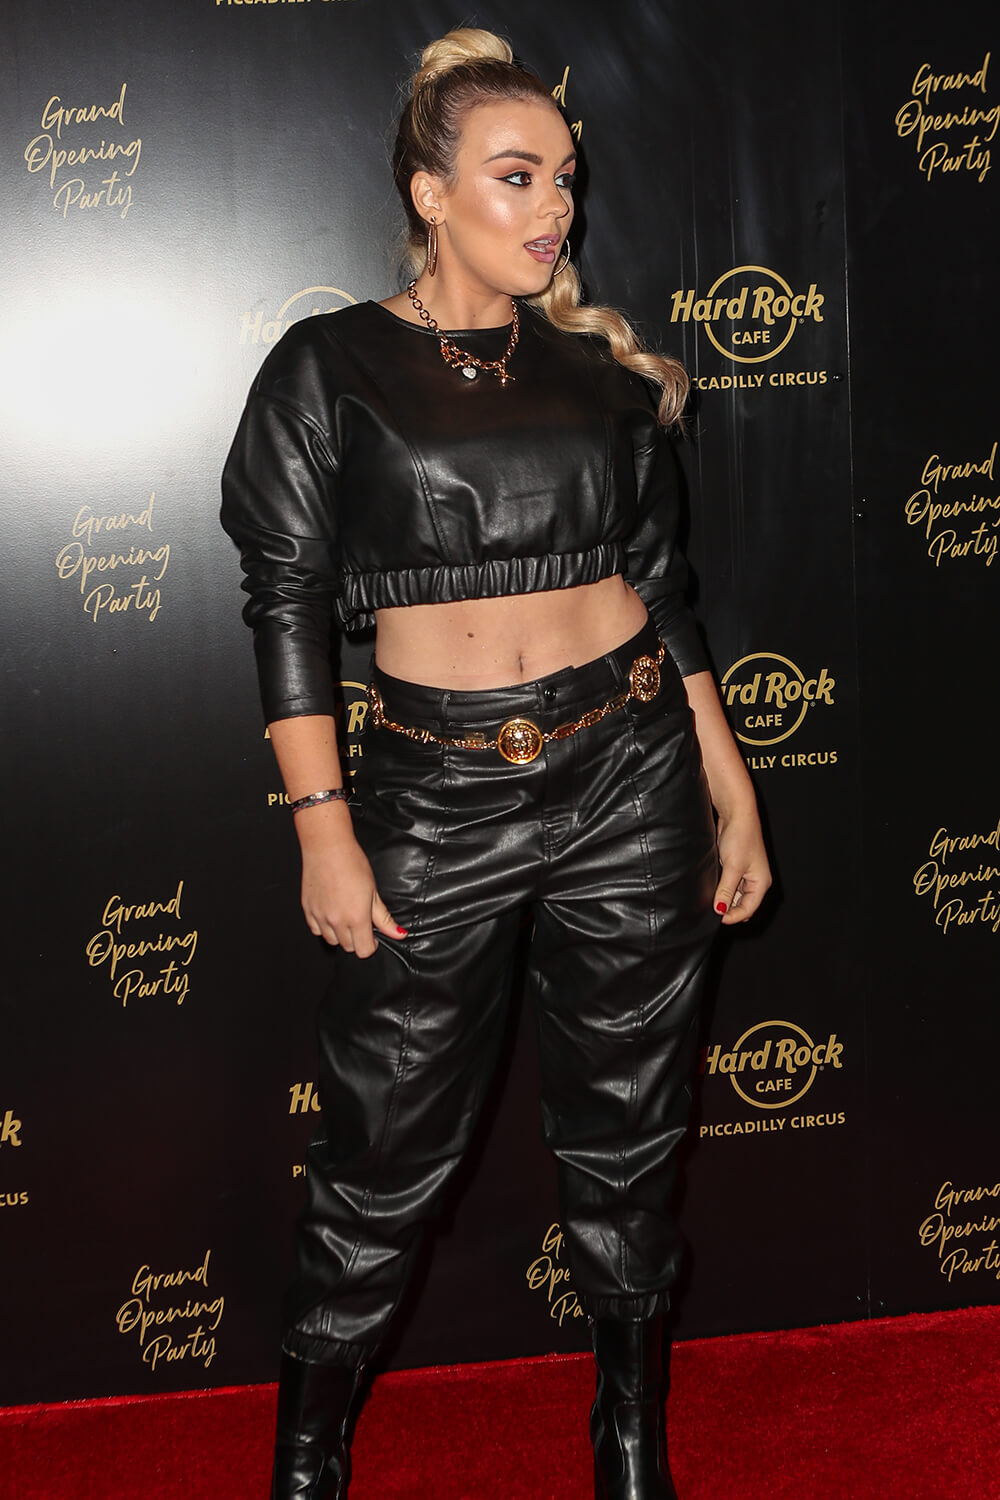 Tallia Storm attends Hard Rock Cafe Opening